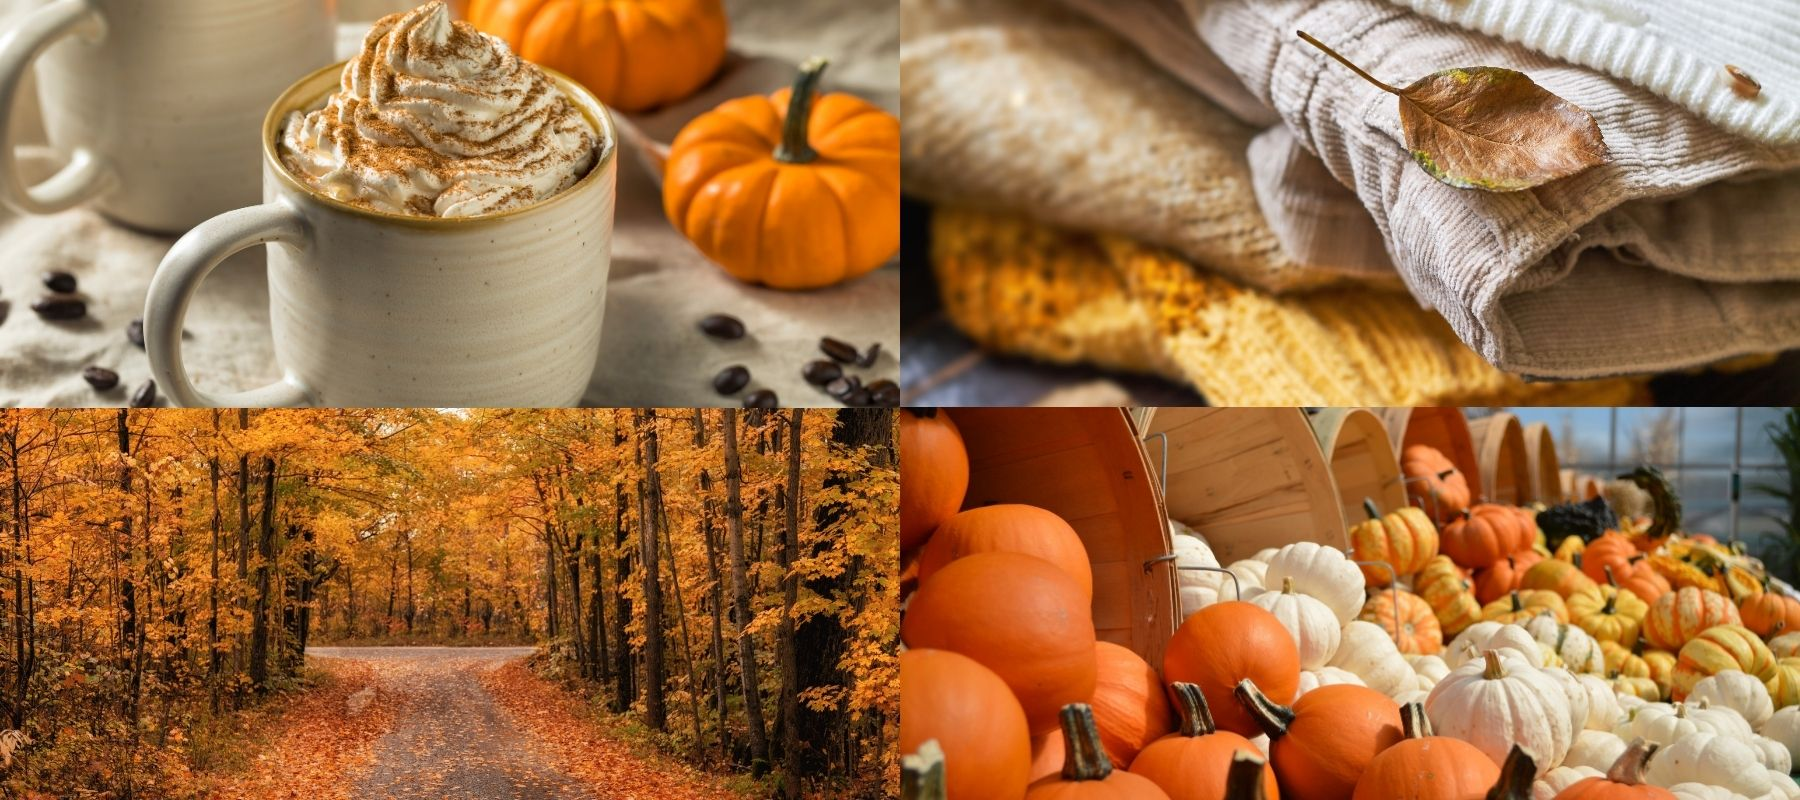 Four Panels of Different Fall Photos: Pumpkin Spiced Late, Fall Clothes, Fall Leaves, and Pumpkins